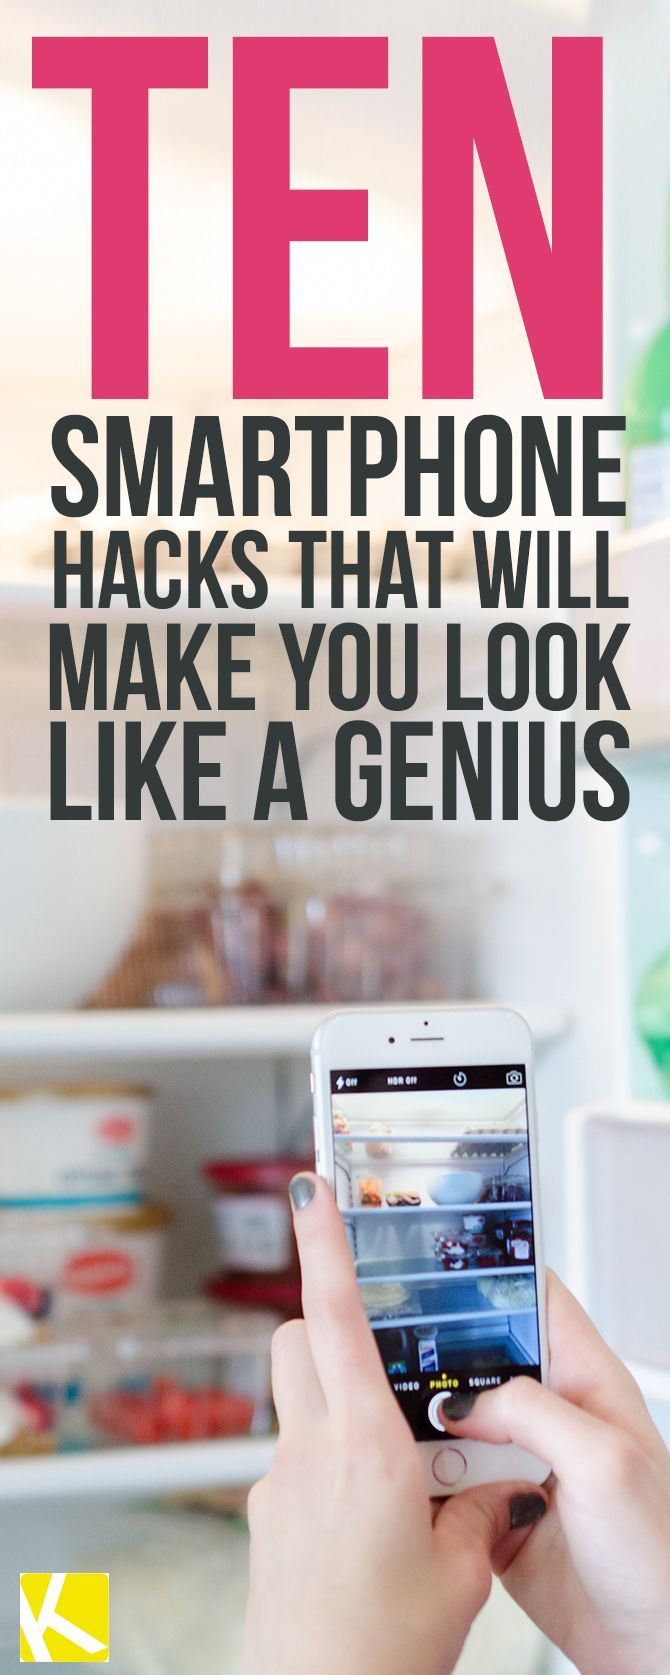 10 genius smartphone hacks that will change your life tipps tipps und tricks und praktisch. Black Bedroom Furniture Sets. Home Design Ideas